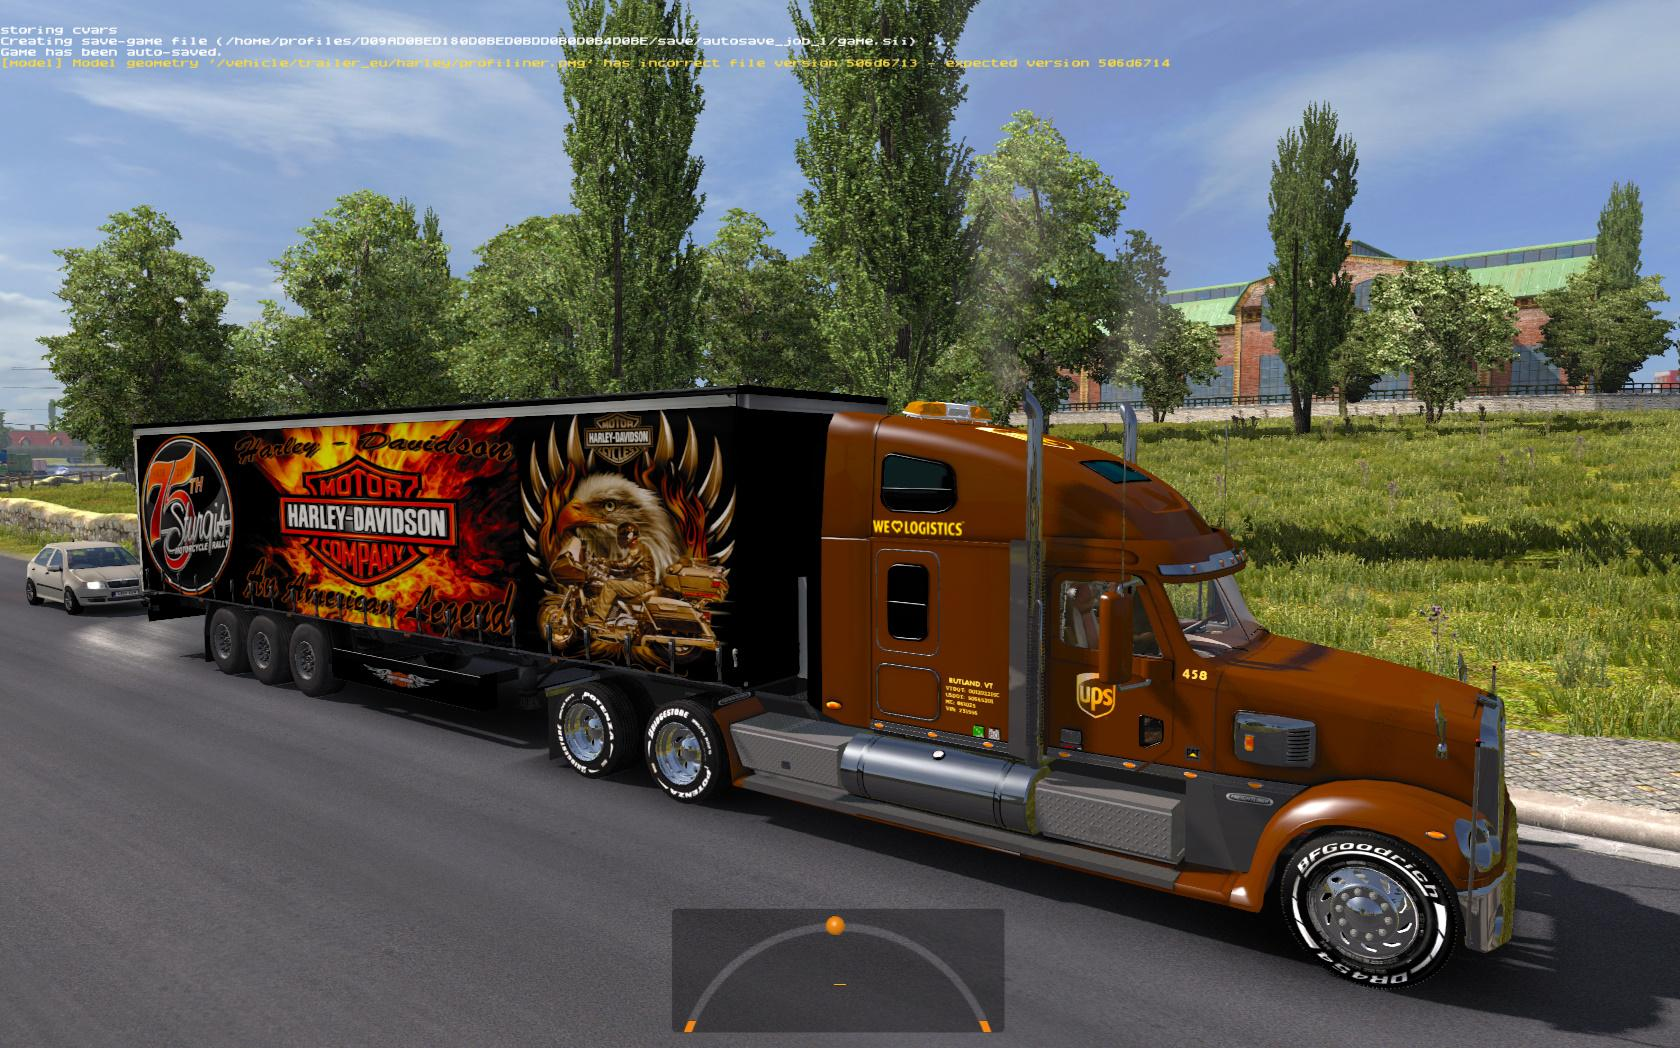 harley davidson trailer ets2 ets2 mod. Black Bedroom Furniture Sets. Home Design Ideas